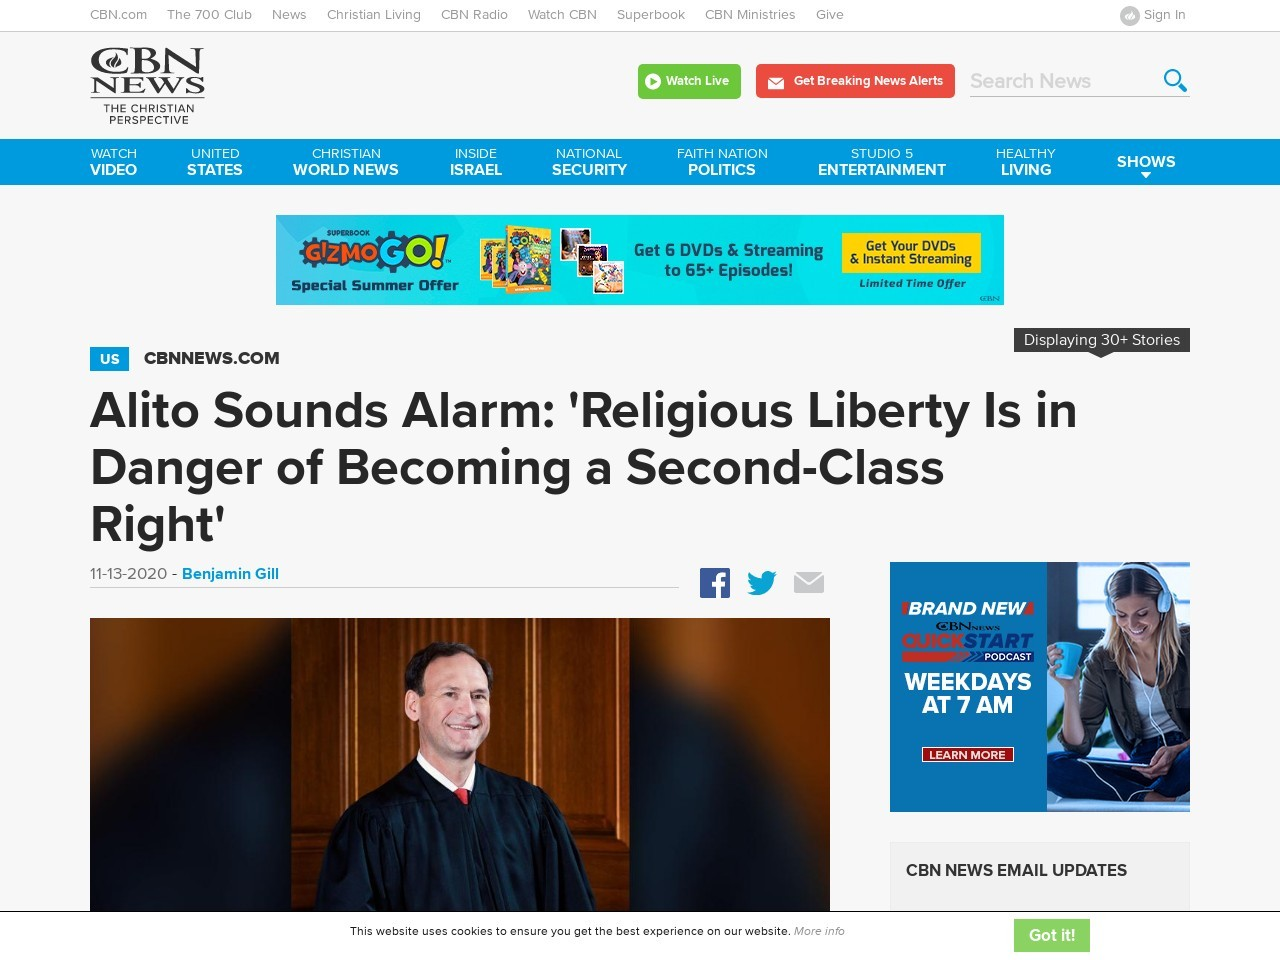 Alito Sounds Alarm: 'Religious Liberty Is in Danger of Becoming a Second-Class Right'